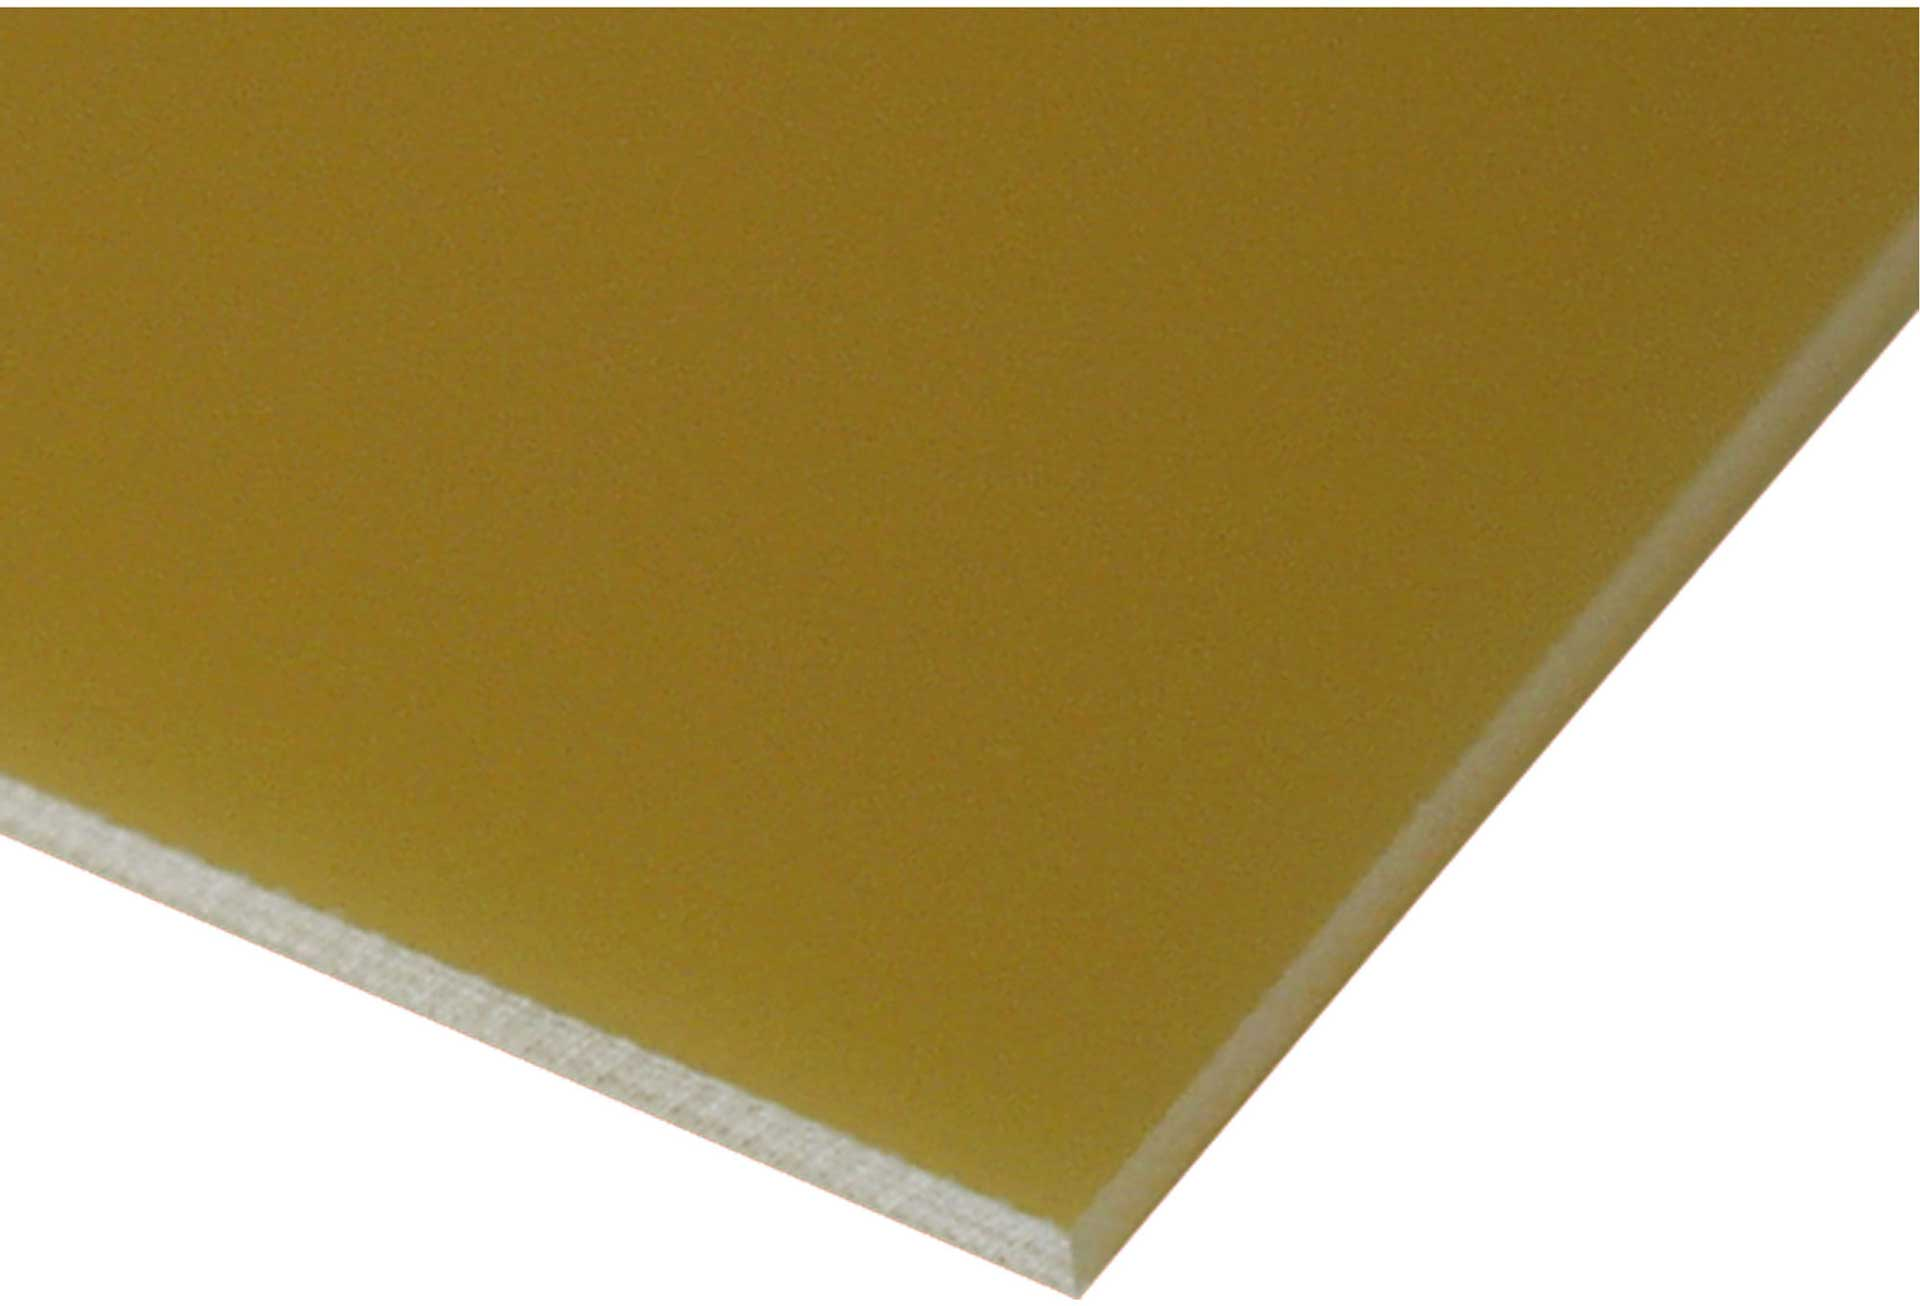 ROBBE GLASS FIBRE SHEET 4,0MM 350/150MM 1PCS.